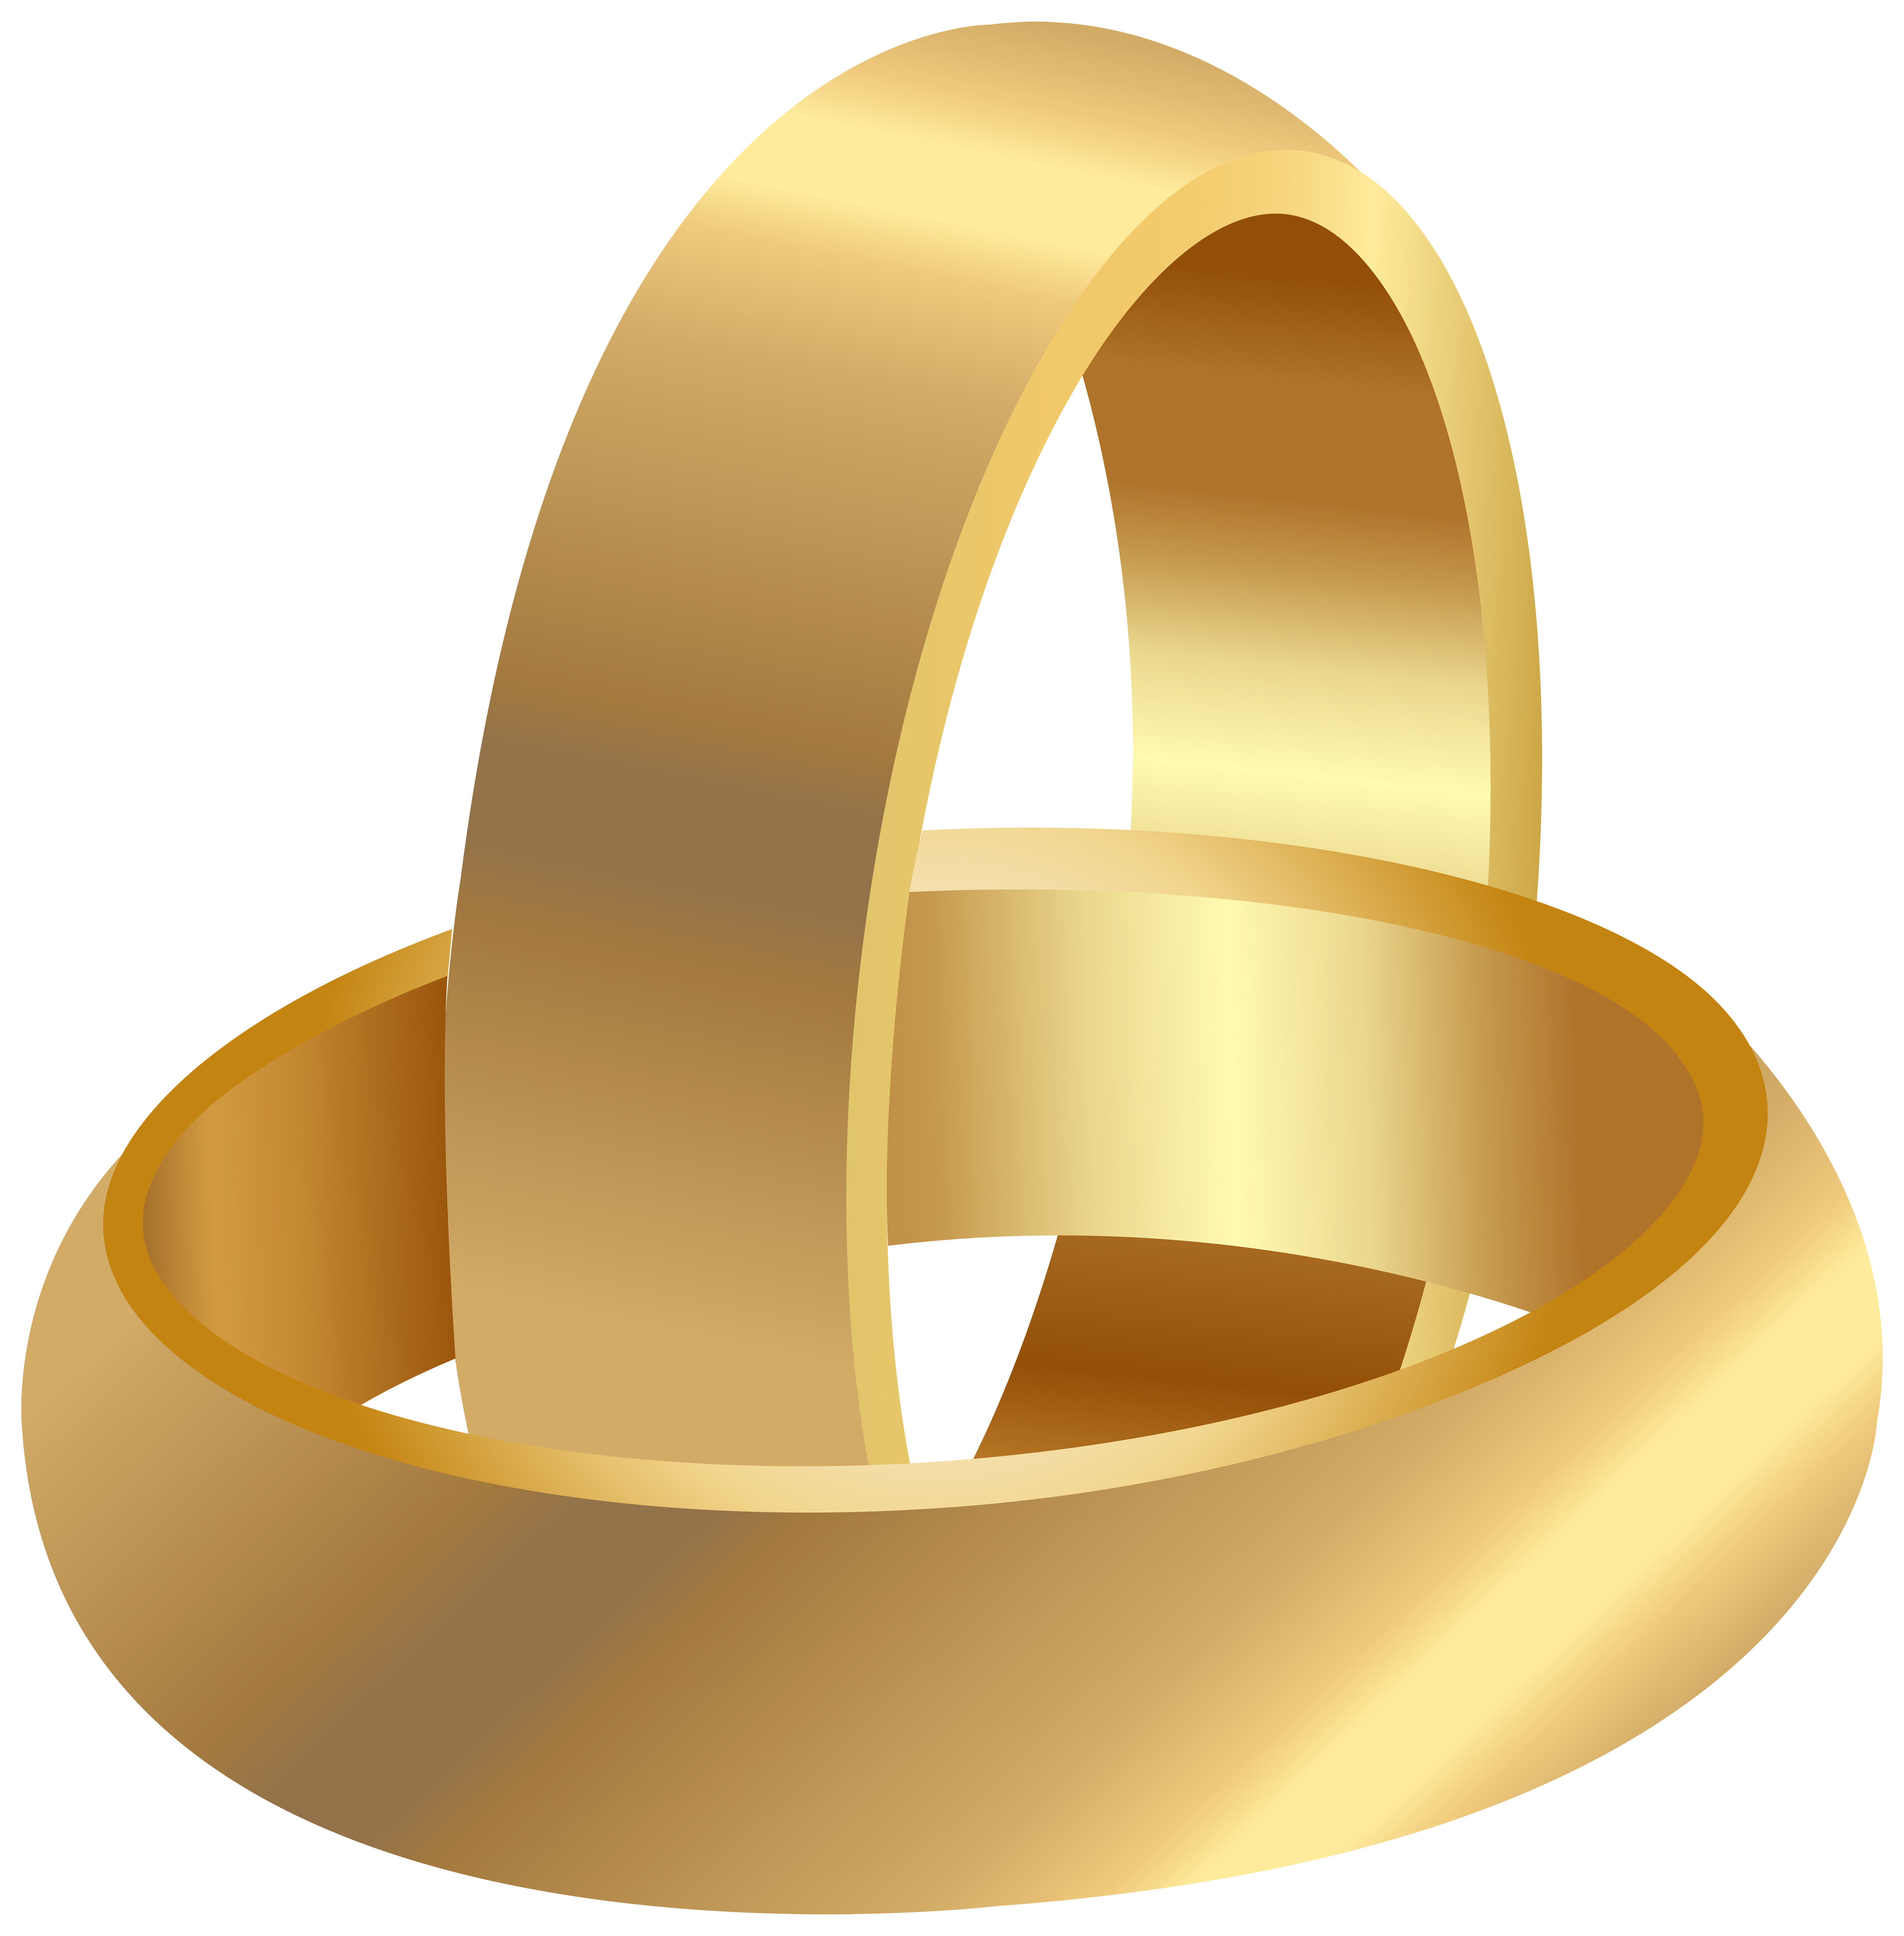 Engagement clipart wedding cocktail. Golden rings png clip